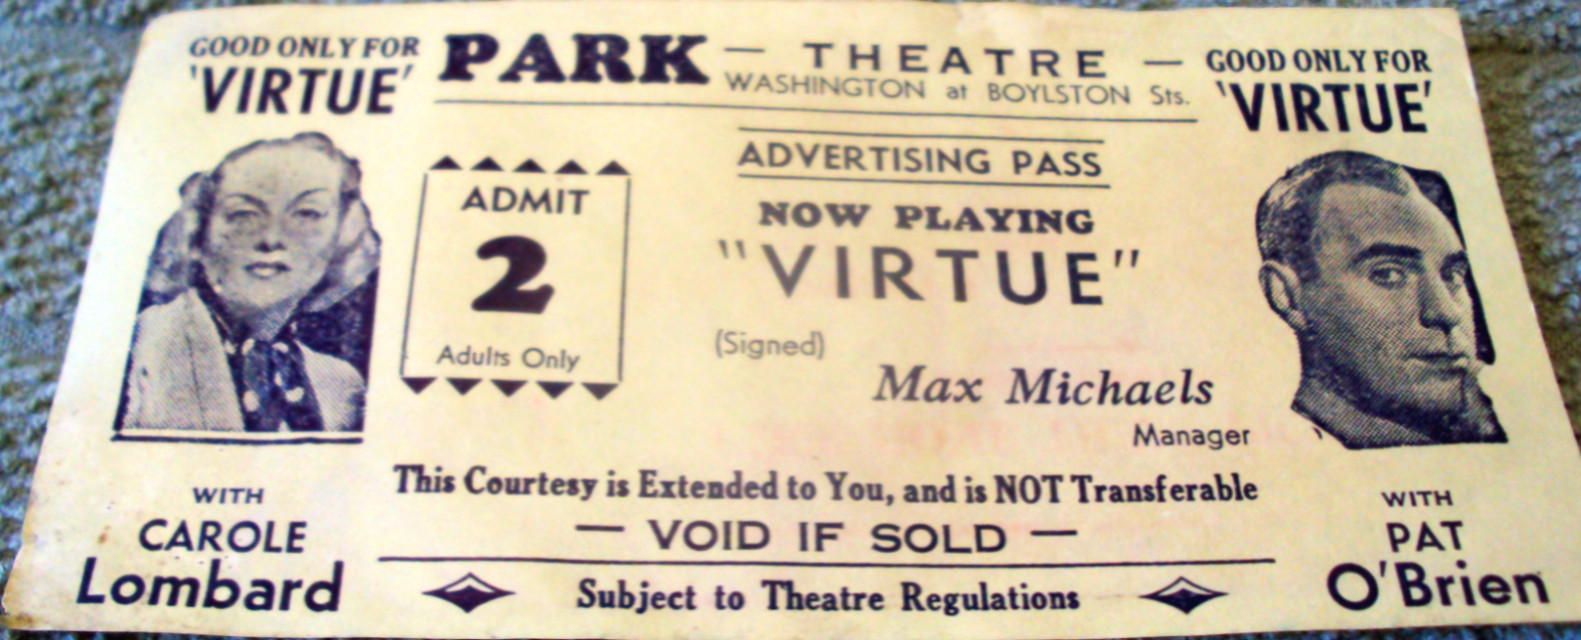 carole lombard virtue pass park theatre boston 00a